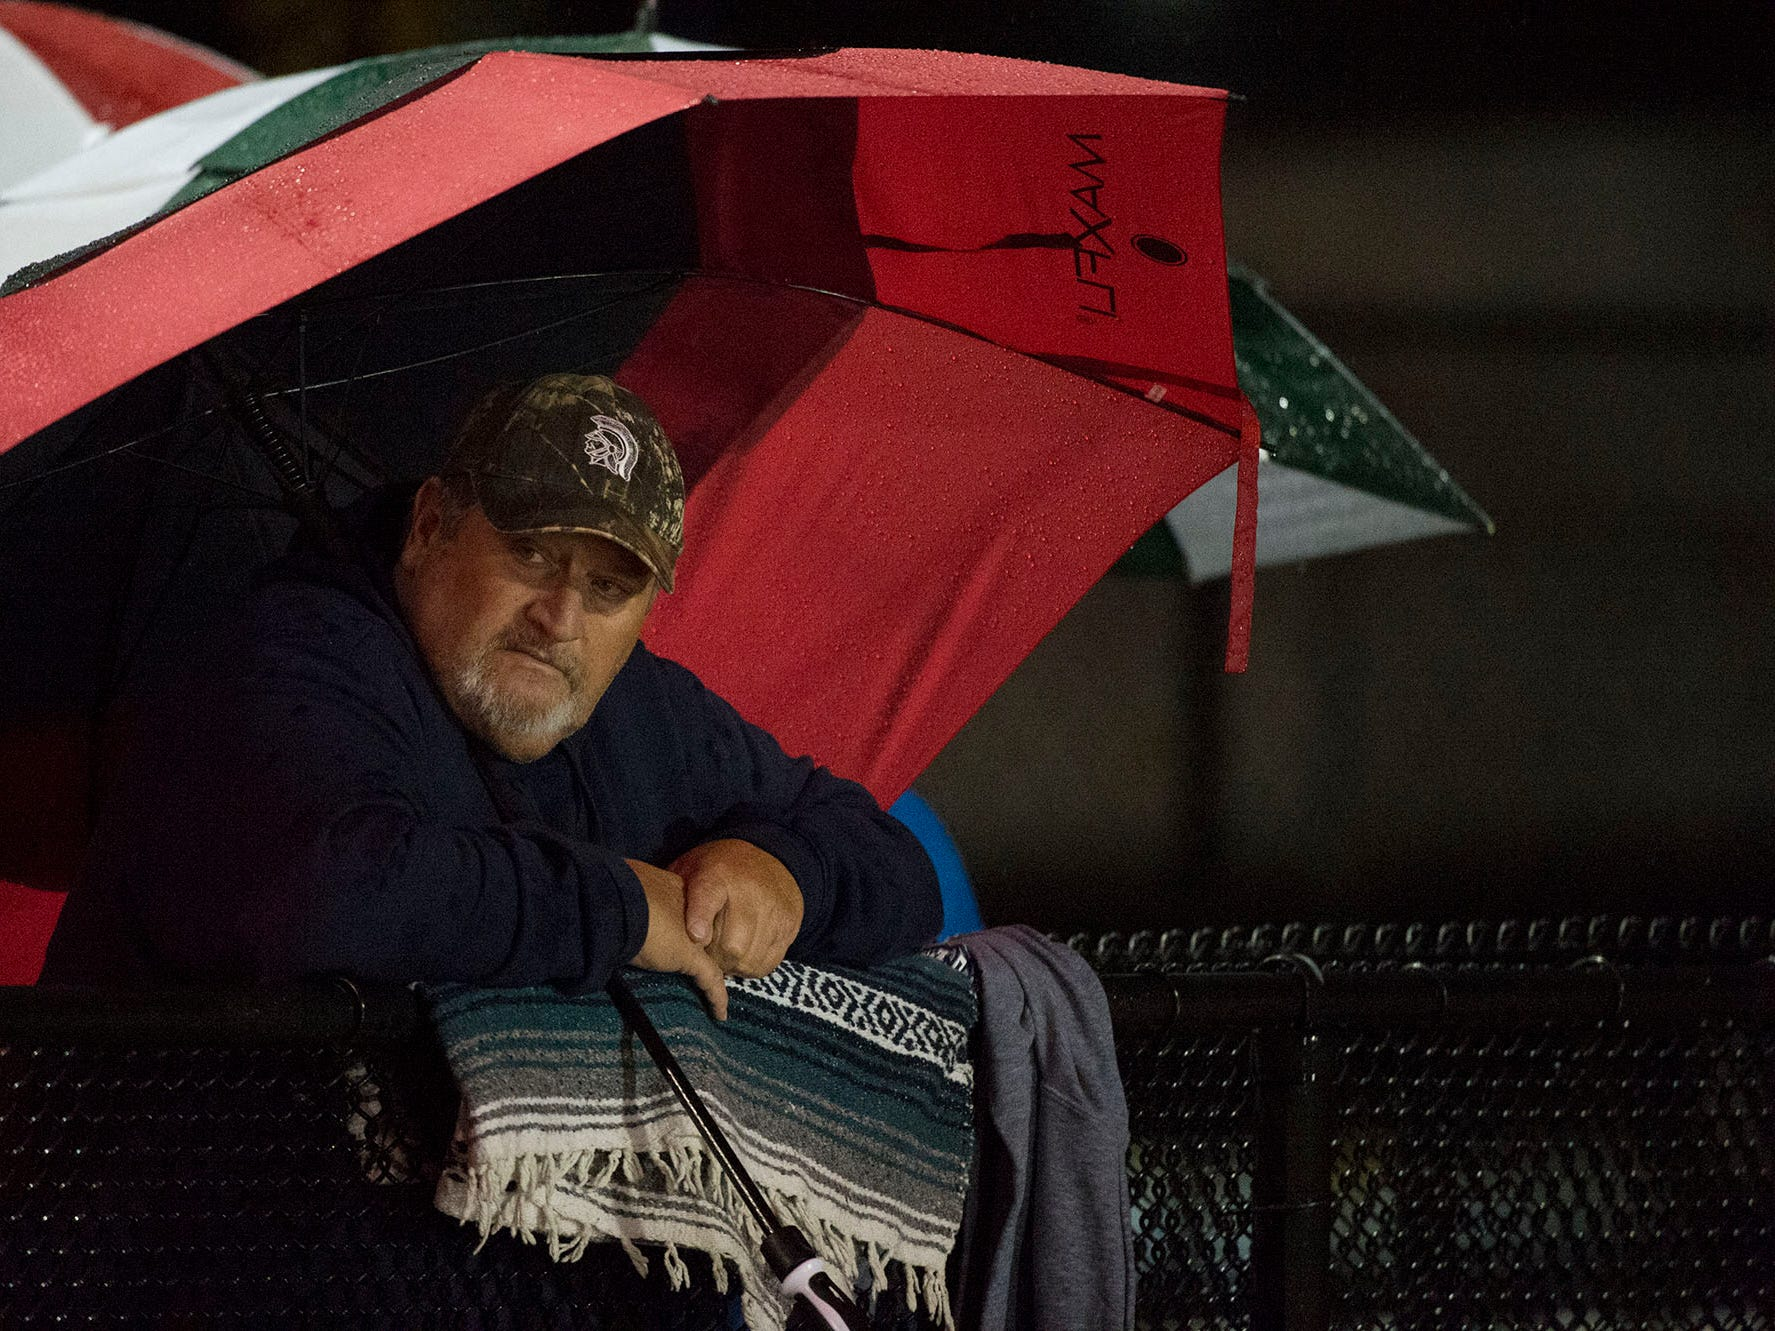 Fans needed rain gear to watch the game. Chambersburg Trojans dropped a close game 20-17 to Manheim Township Blue Streaks in the rain during PIAA District 3 playoff football on Friday, Nov. 2, 2018.